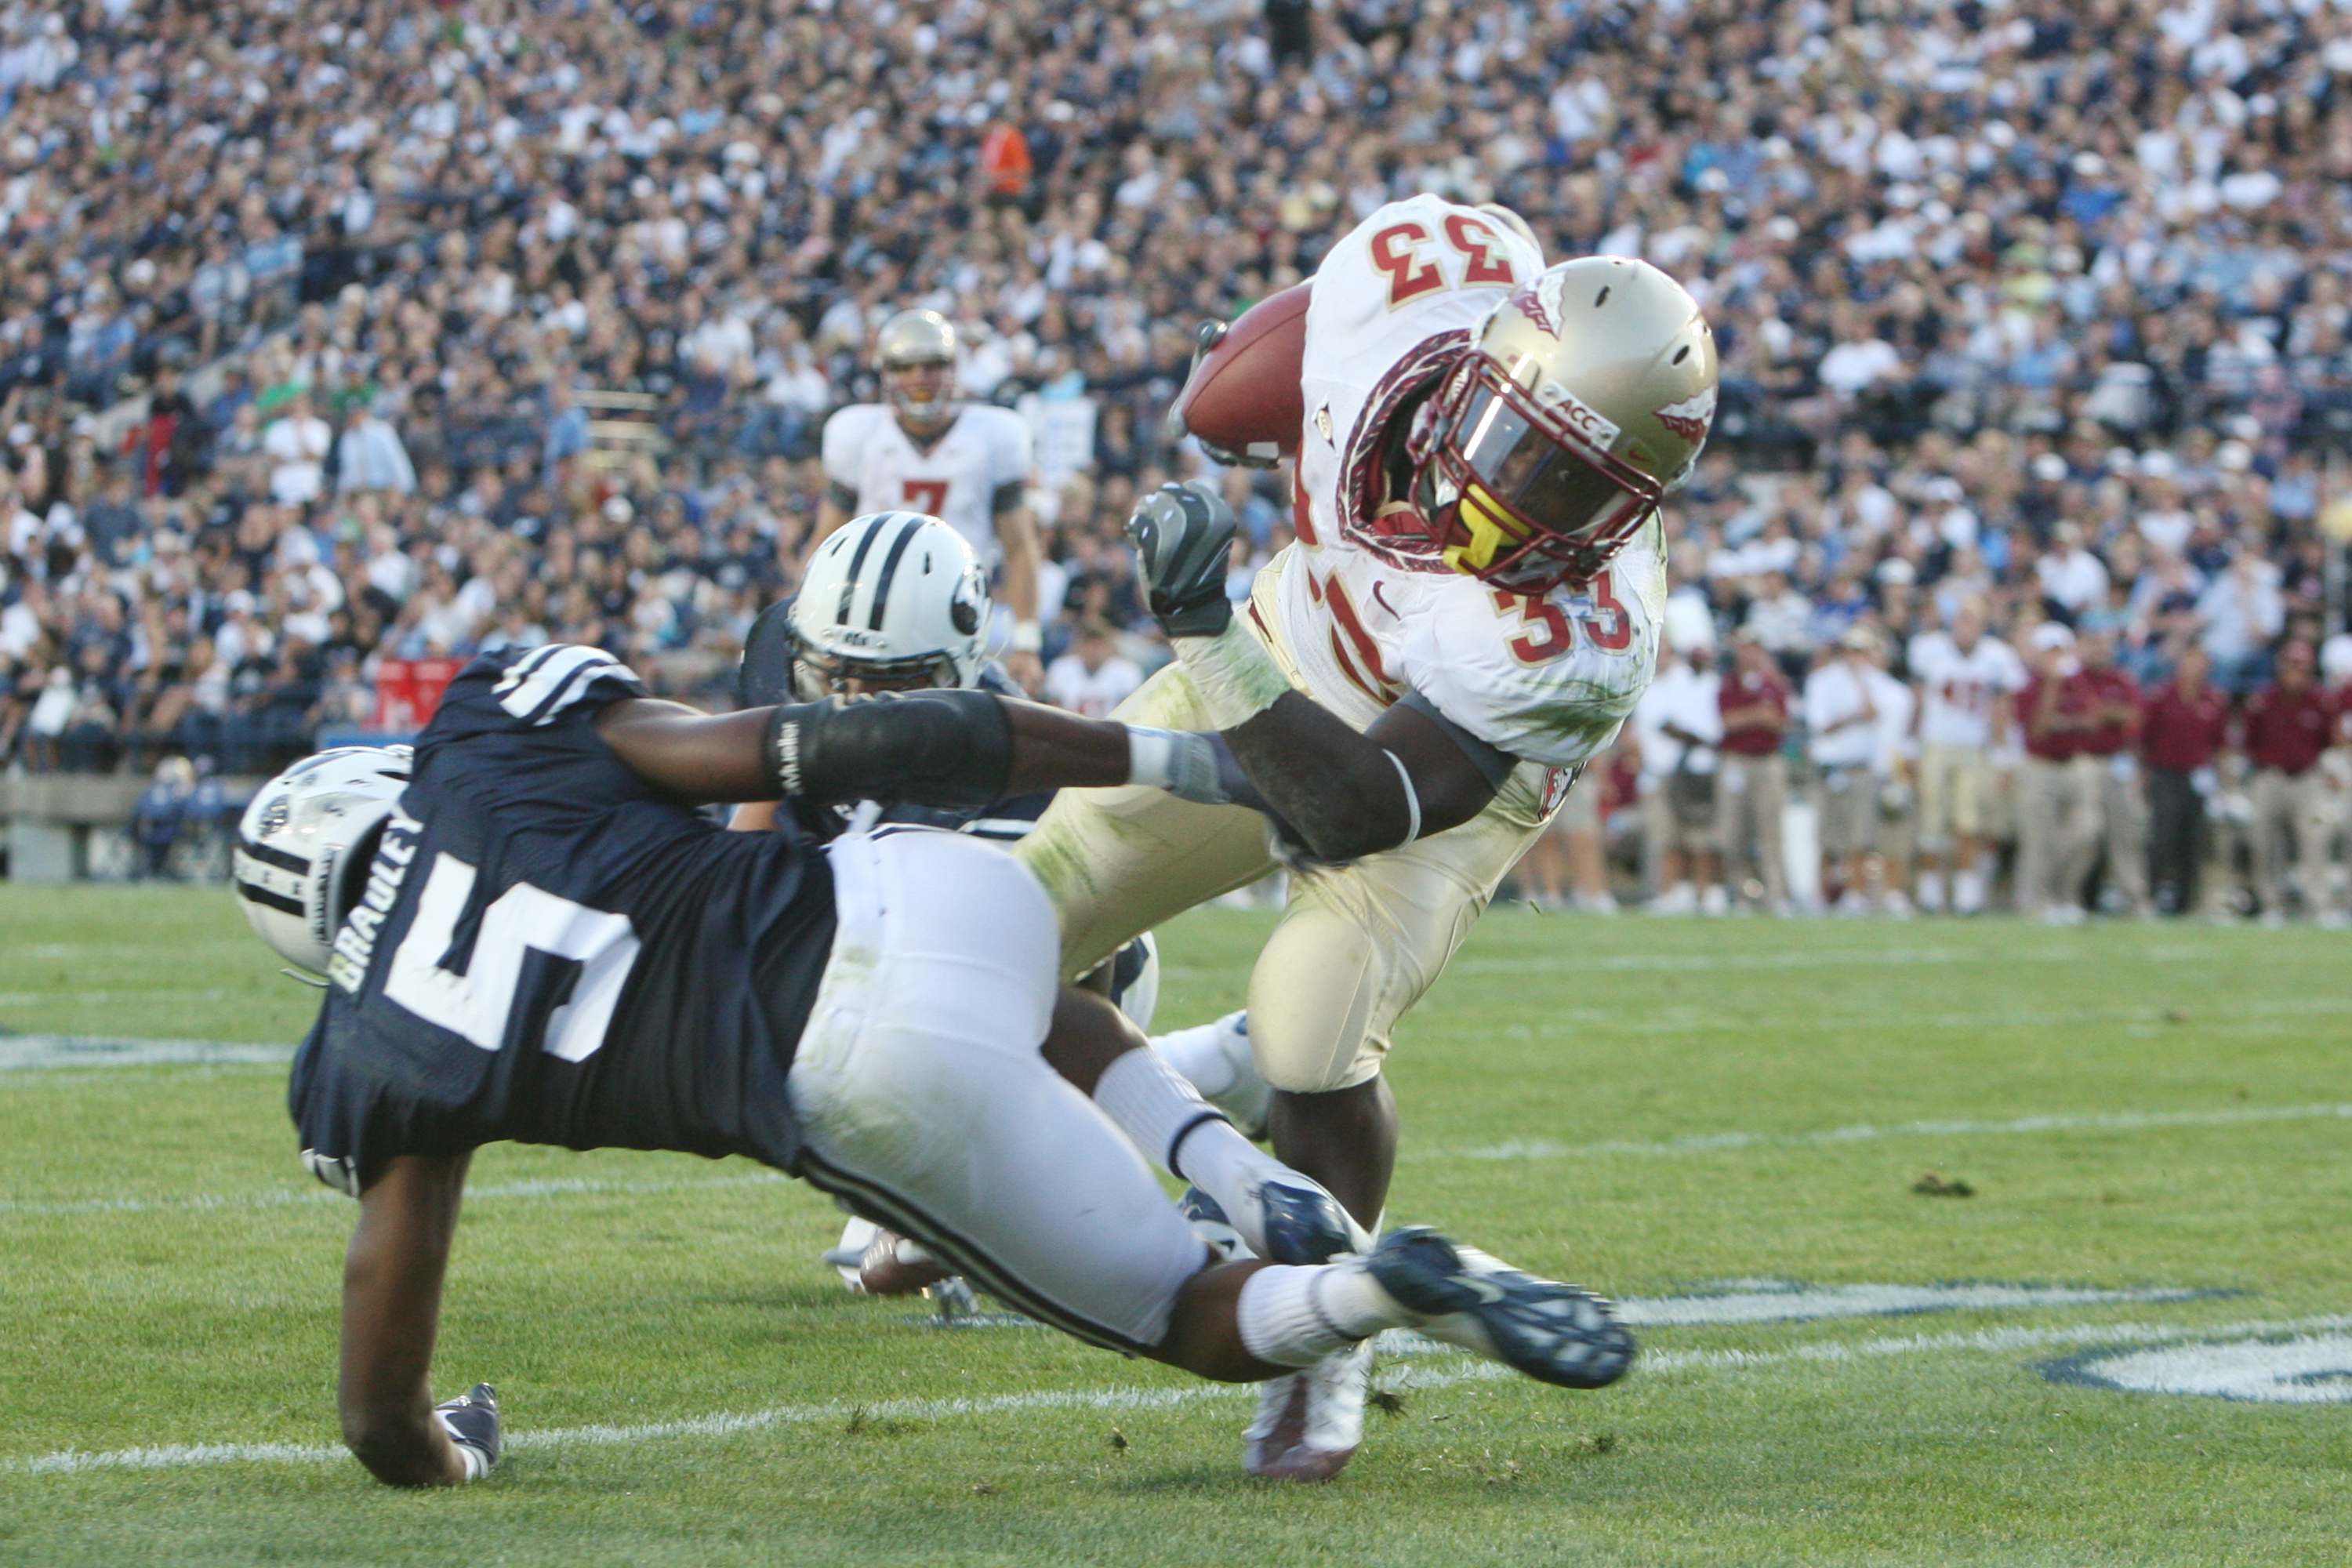 PROVO - SEPTEMBER 19:  Ty Jones #33 of Florida State gets tackled by Brandon Bradley #5 of Brigham Young University at La Vell Edwards Stadium on September 19, 2009 in Provo, Utah.  (Photo by Melissa Majchrzak/Getty Images)